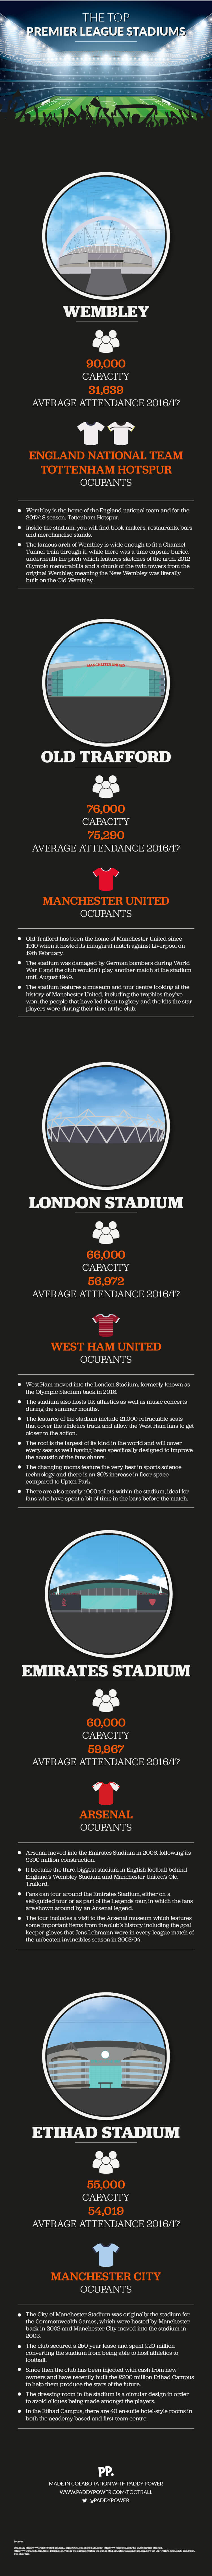 Top Premier League Stadiums infographic